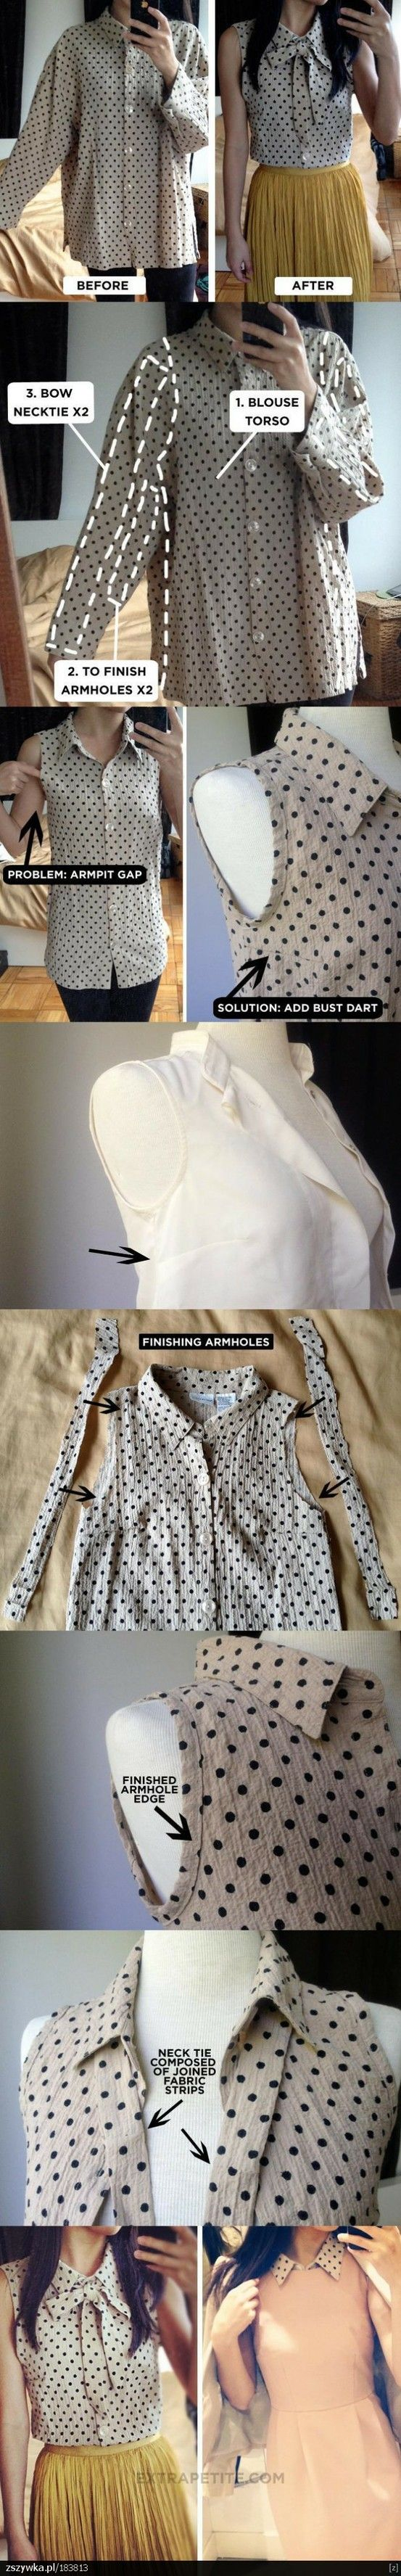 DIY TUTORIAL: BLOUSE CONVERSION